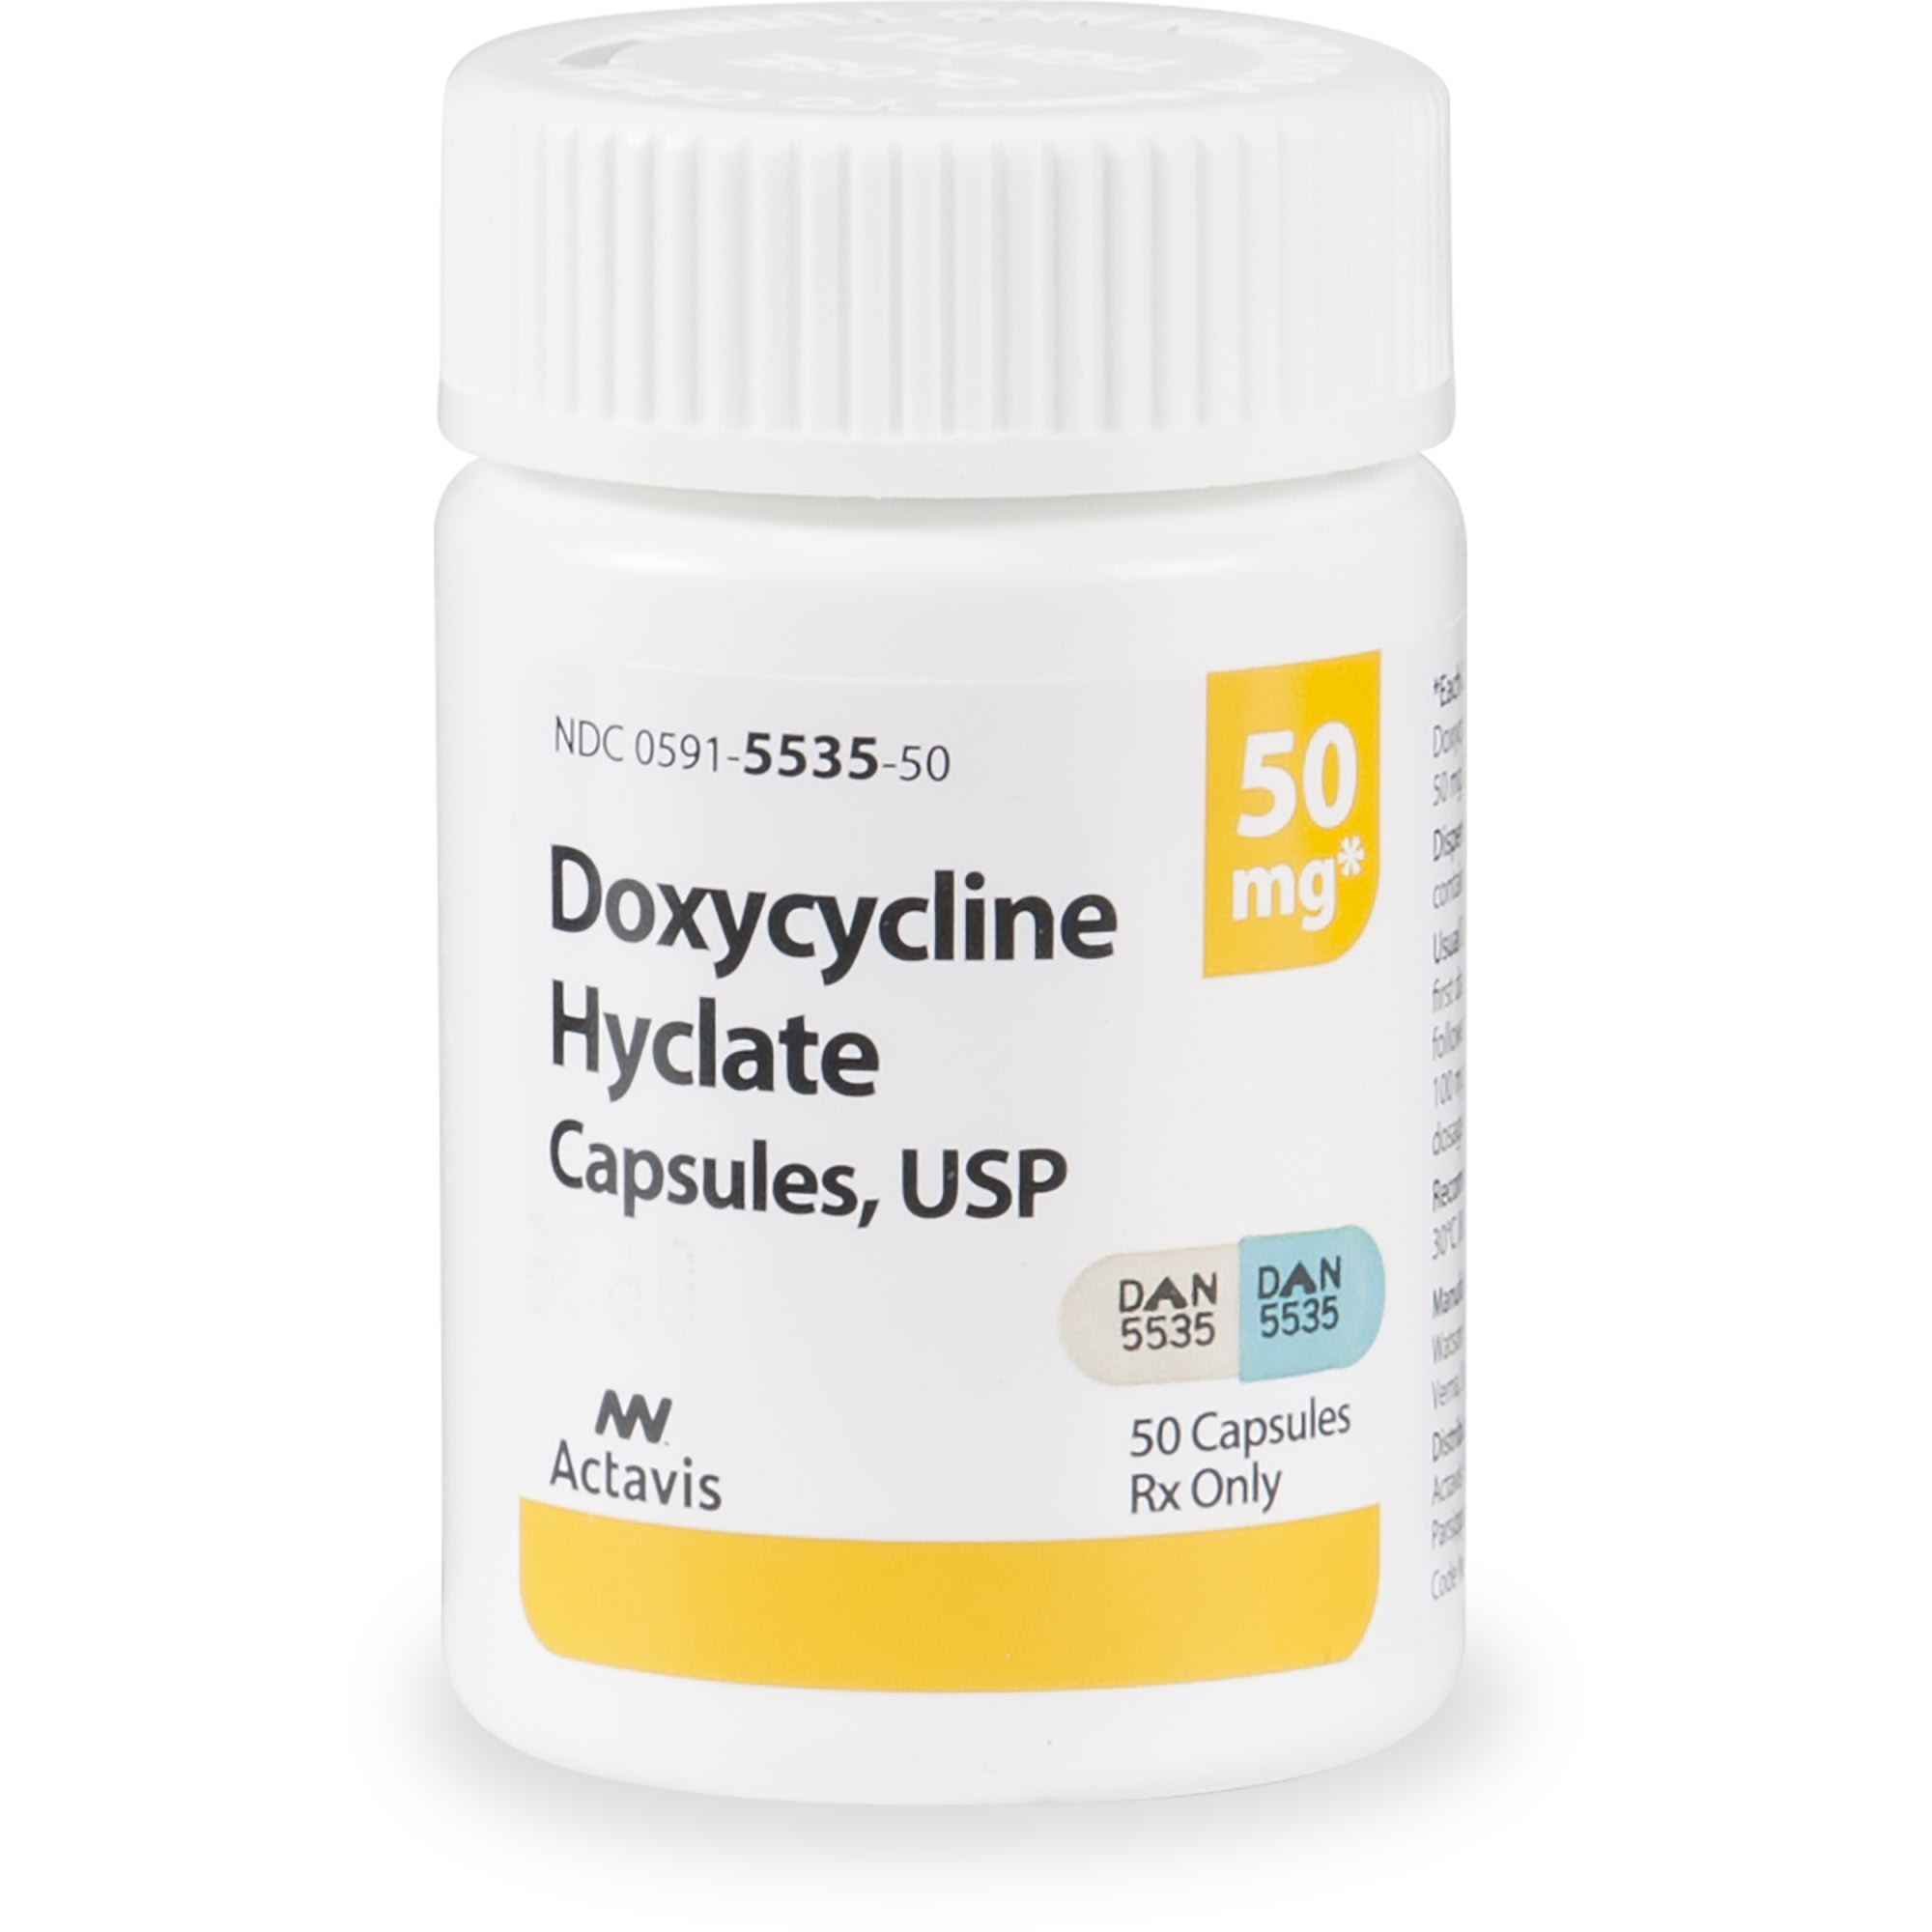 Doxycycline 50 mg Capsules, 30 Count | Petco